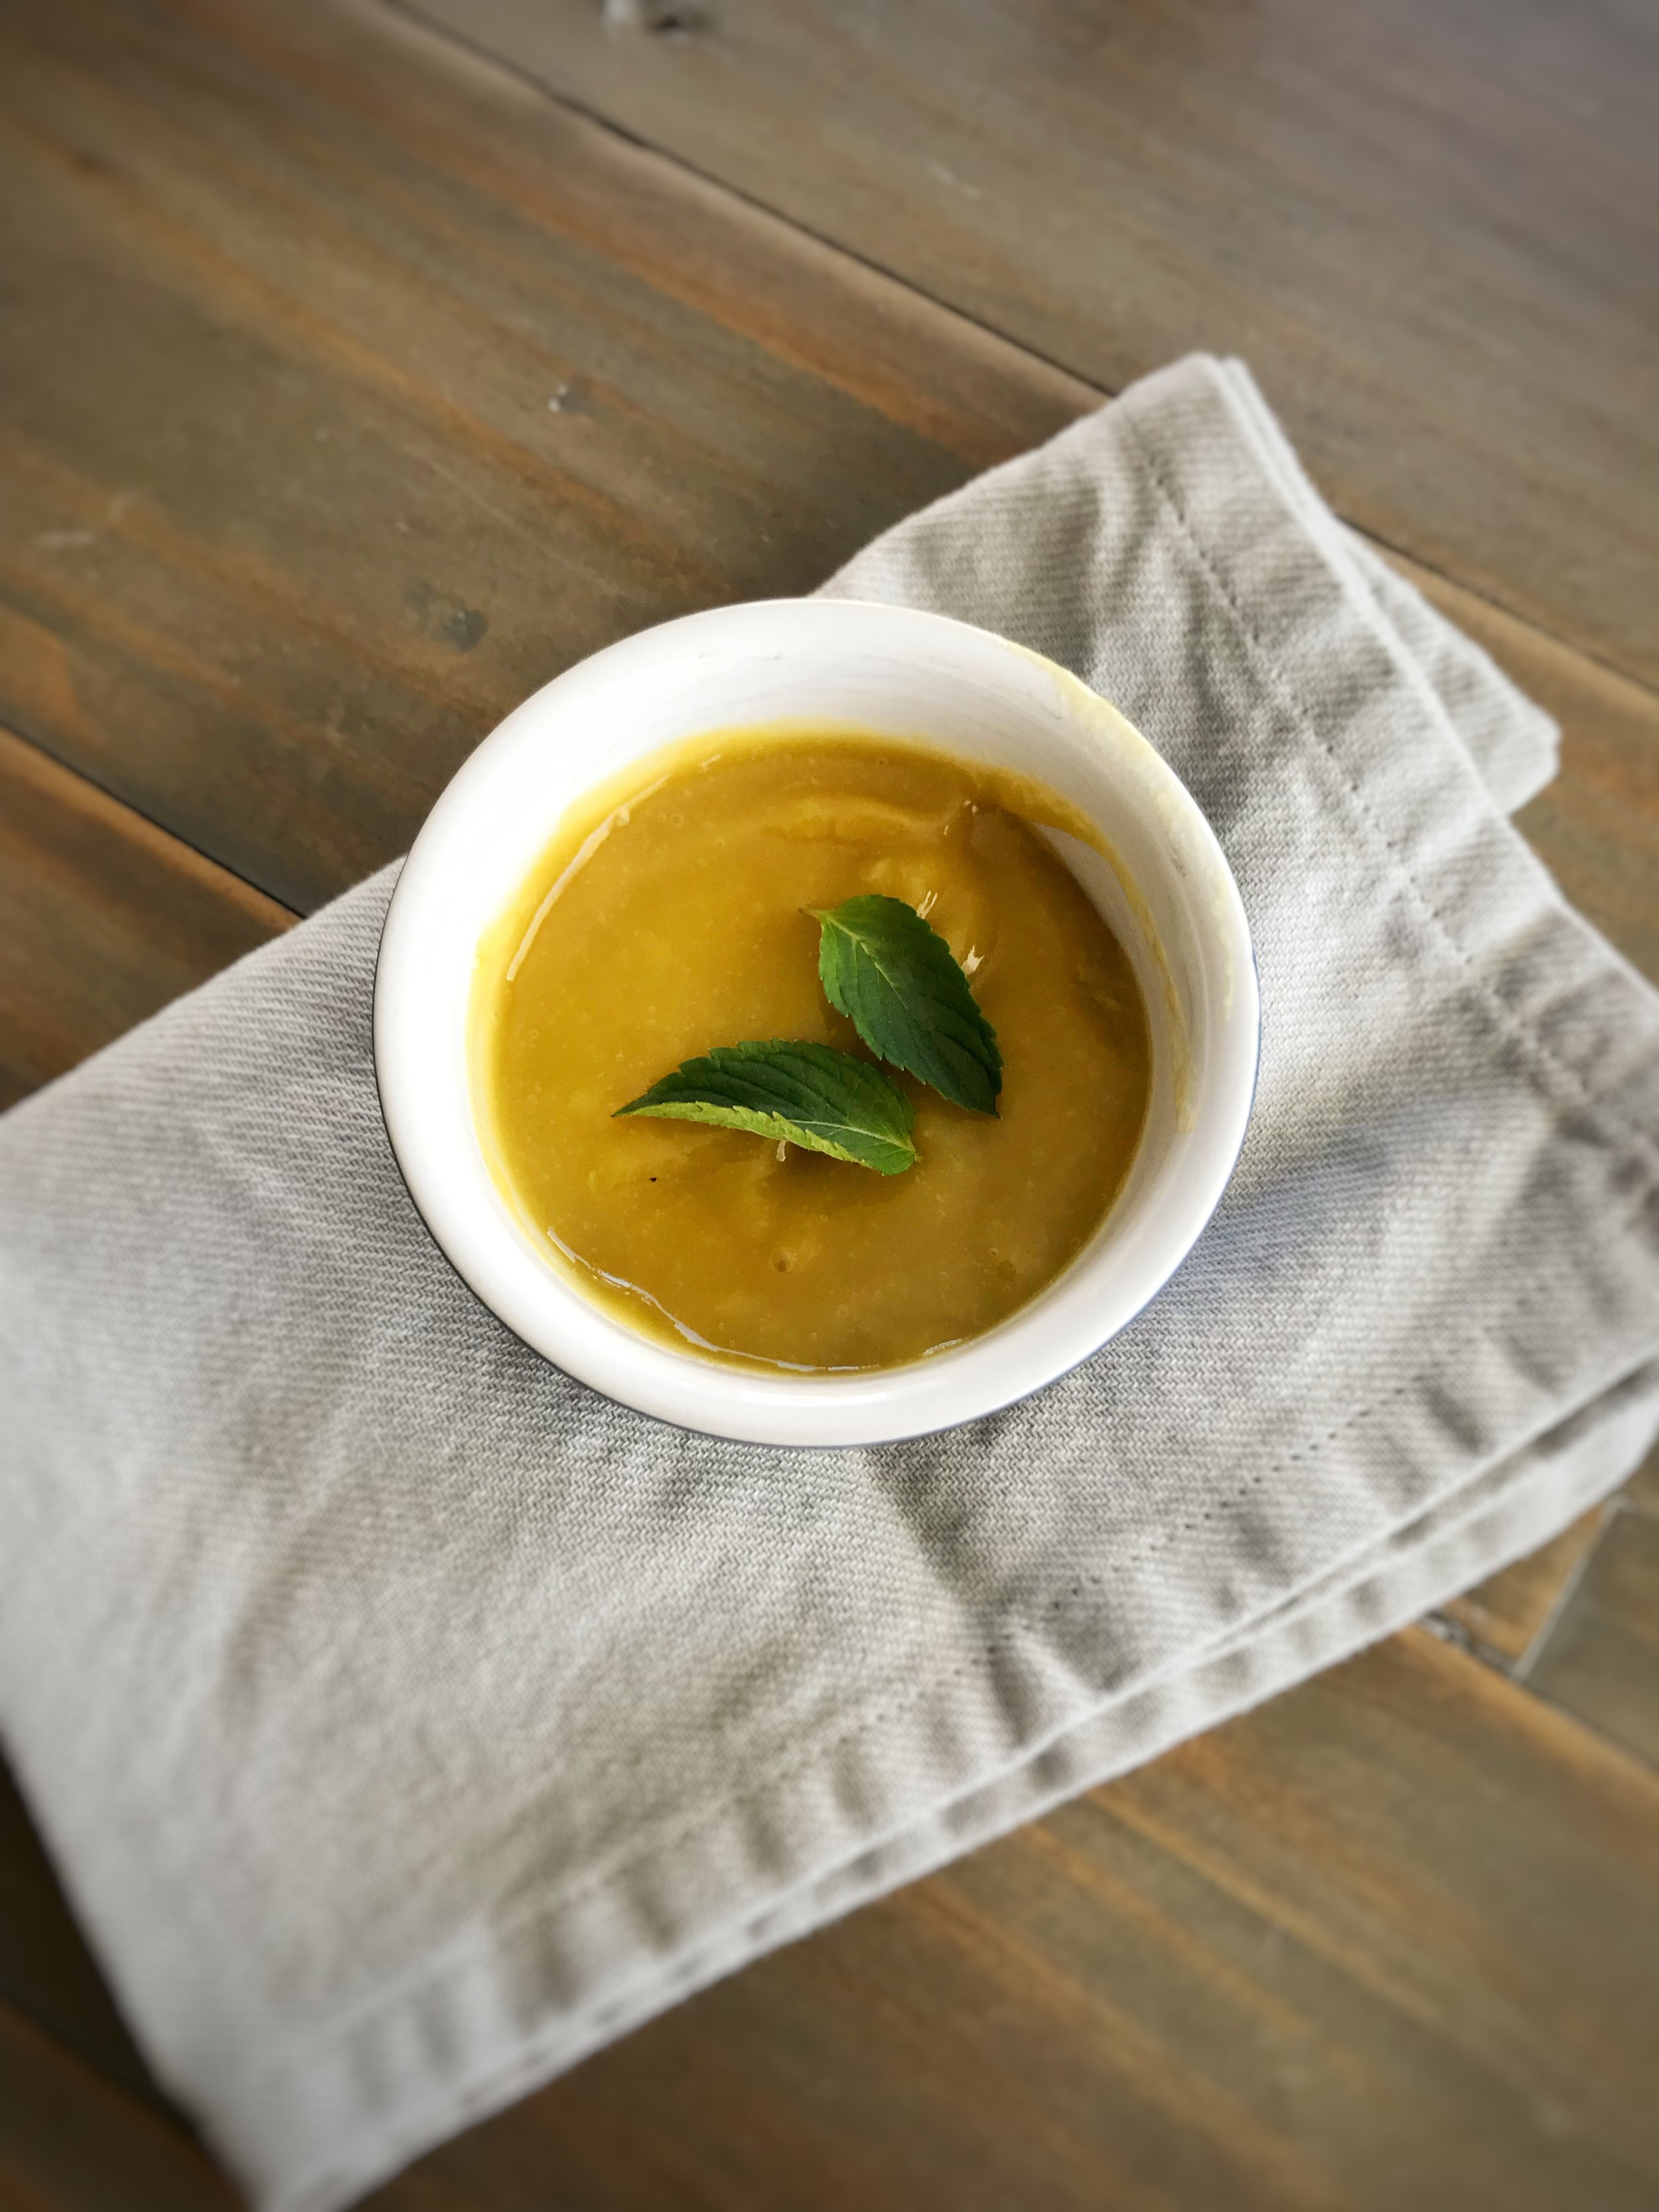 Mango-lime Purée - Ingredients:1/2 mango Juice of 1/2 limeDirections:Add chopped mango to a blender or food processor, along with the juice of 1/2 a lime. Blend until smooth. Optional: add 1 mint leaf.